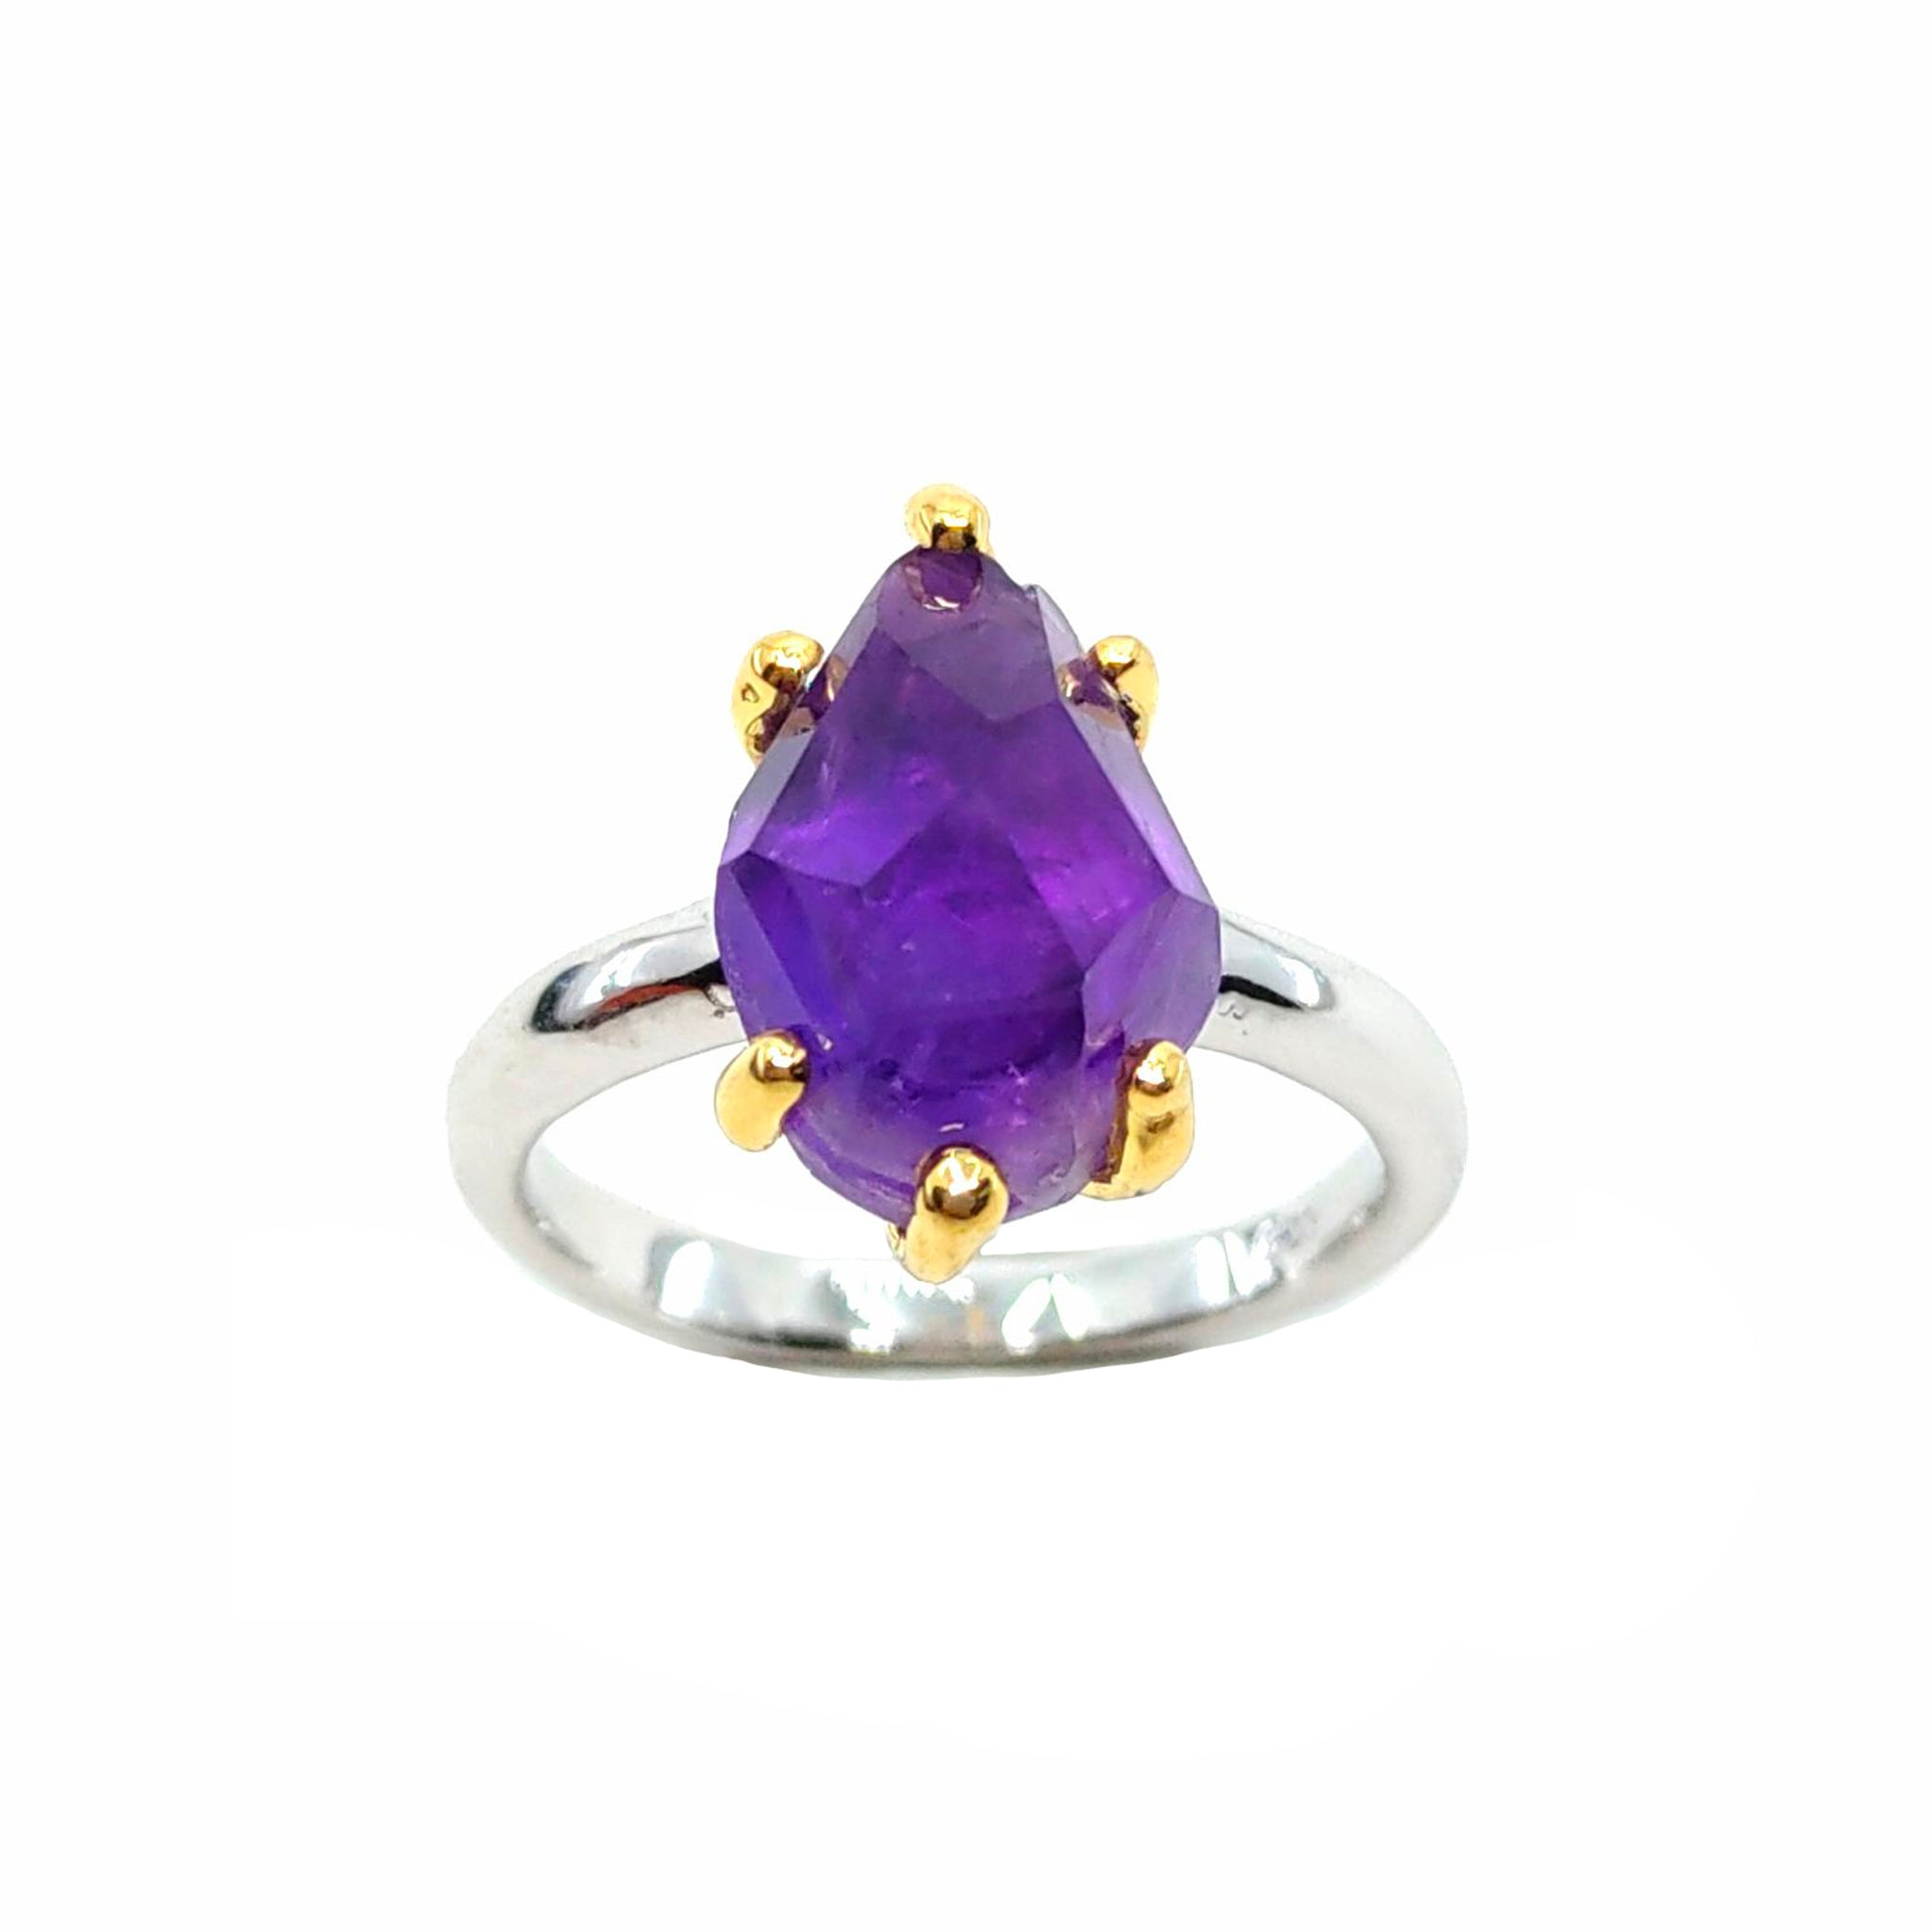 Rough Stone - 925 Sterling Silver Ring, Rough Faceted Amethyst, Plated with 3 Micron 22K Yellow Gold and White Rhodium